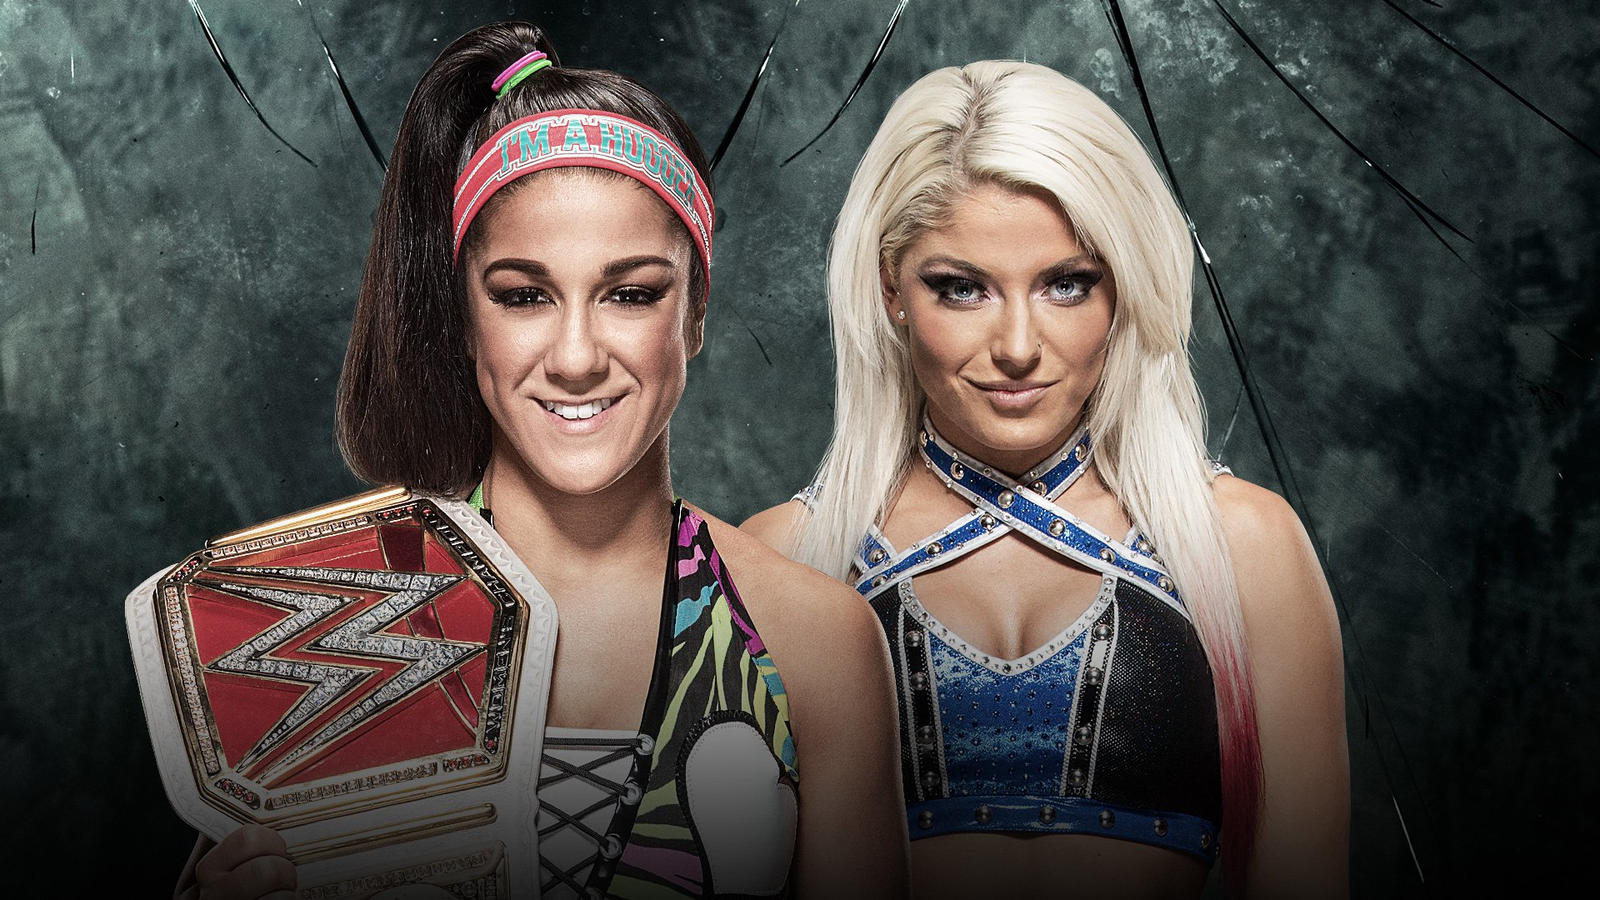 Confirmed and Potential Matches for WWE Payback 2017 20170417_1920x1080_PayBack_BayleyAlexa2--6d1d2a74a501505caf7fd6541466da8f